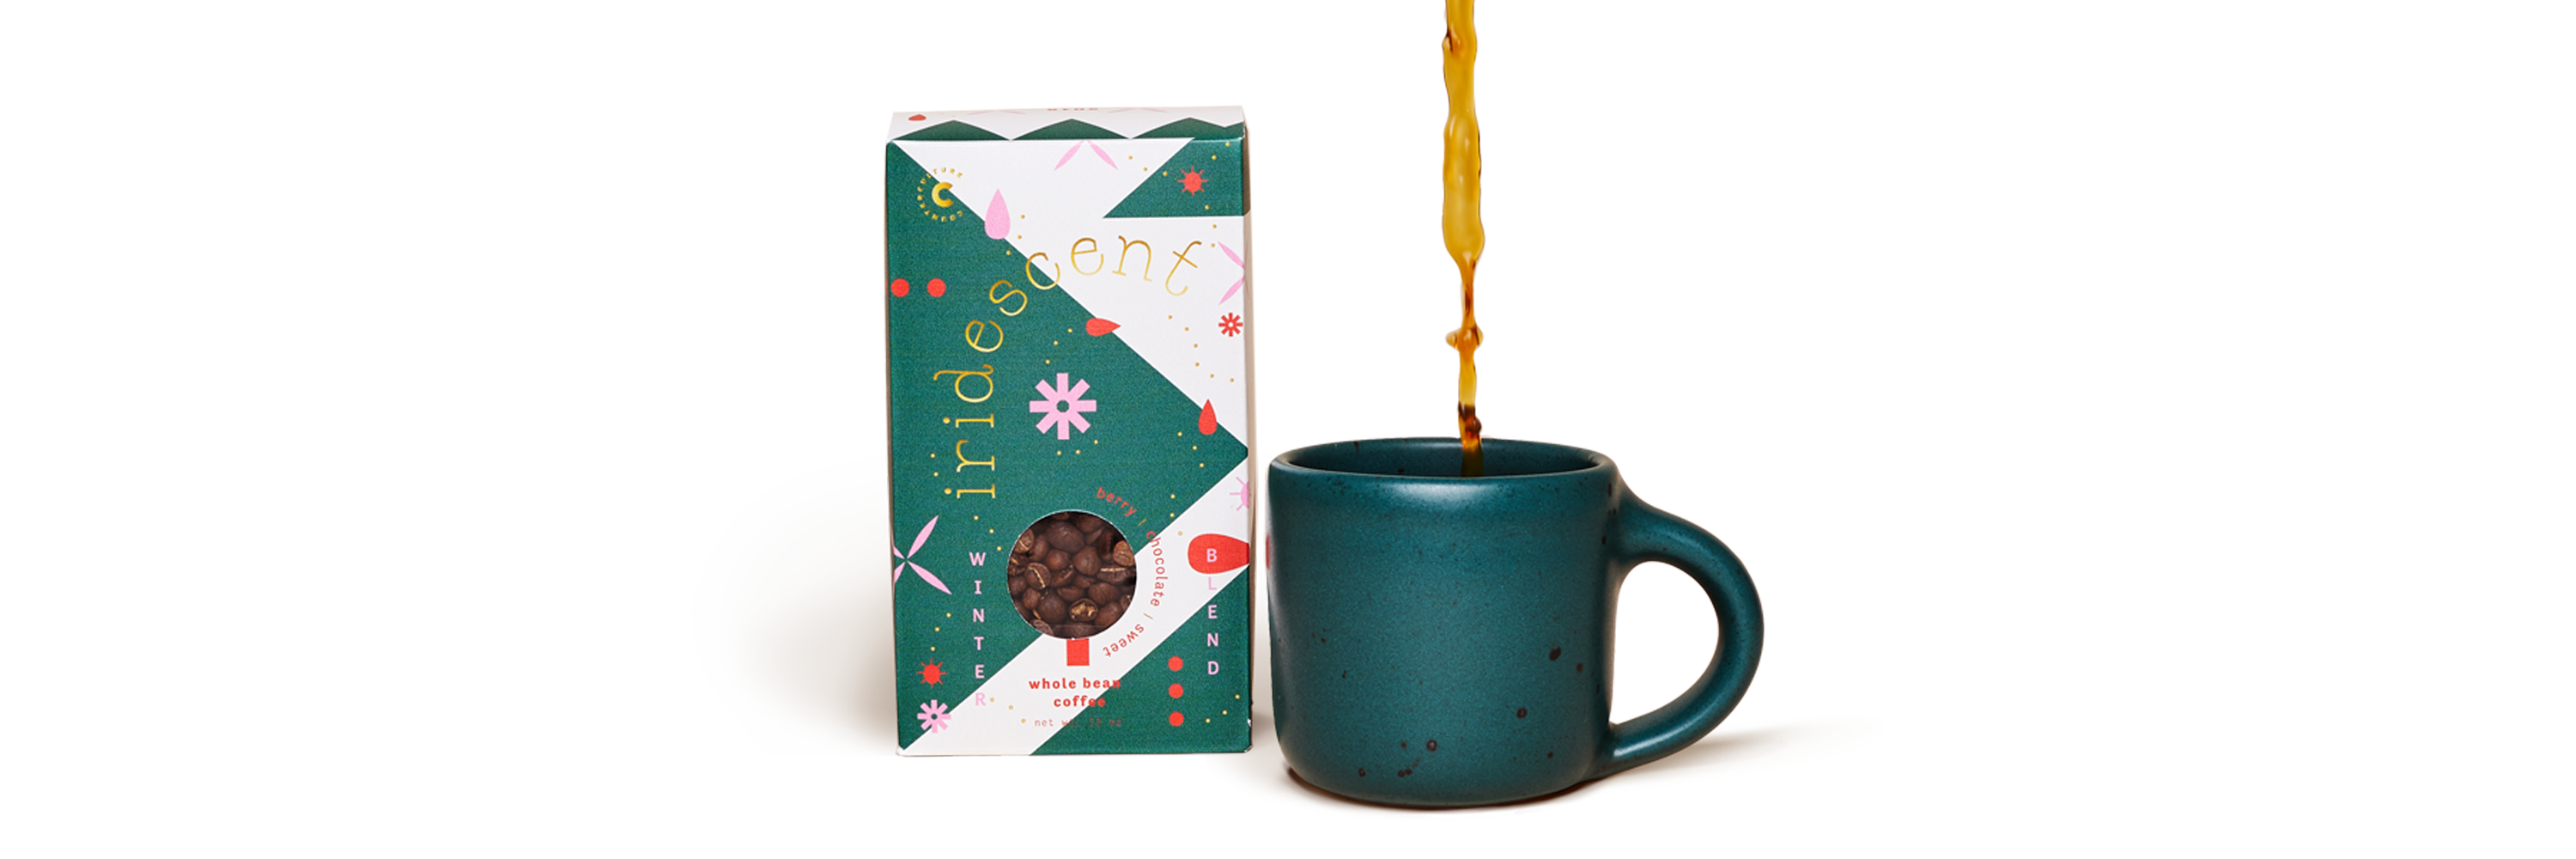 The Third Wave Mug by East Fork Pottery and Counter Culture Coffee with Counter Culture's signature fresh brew